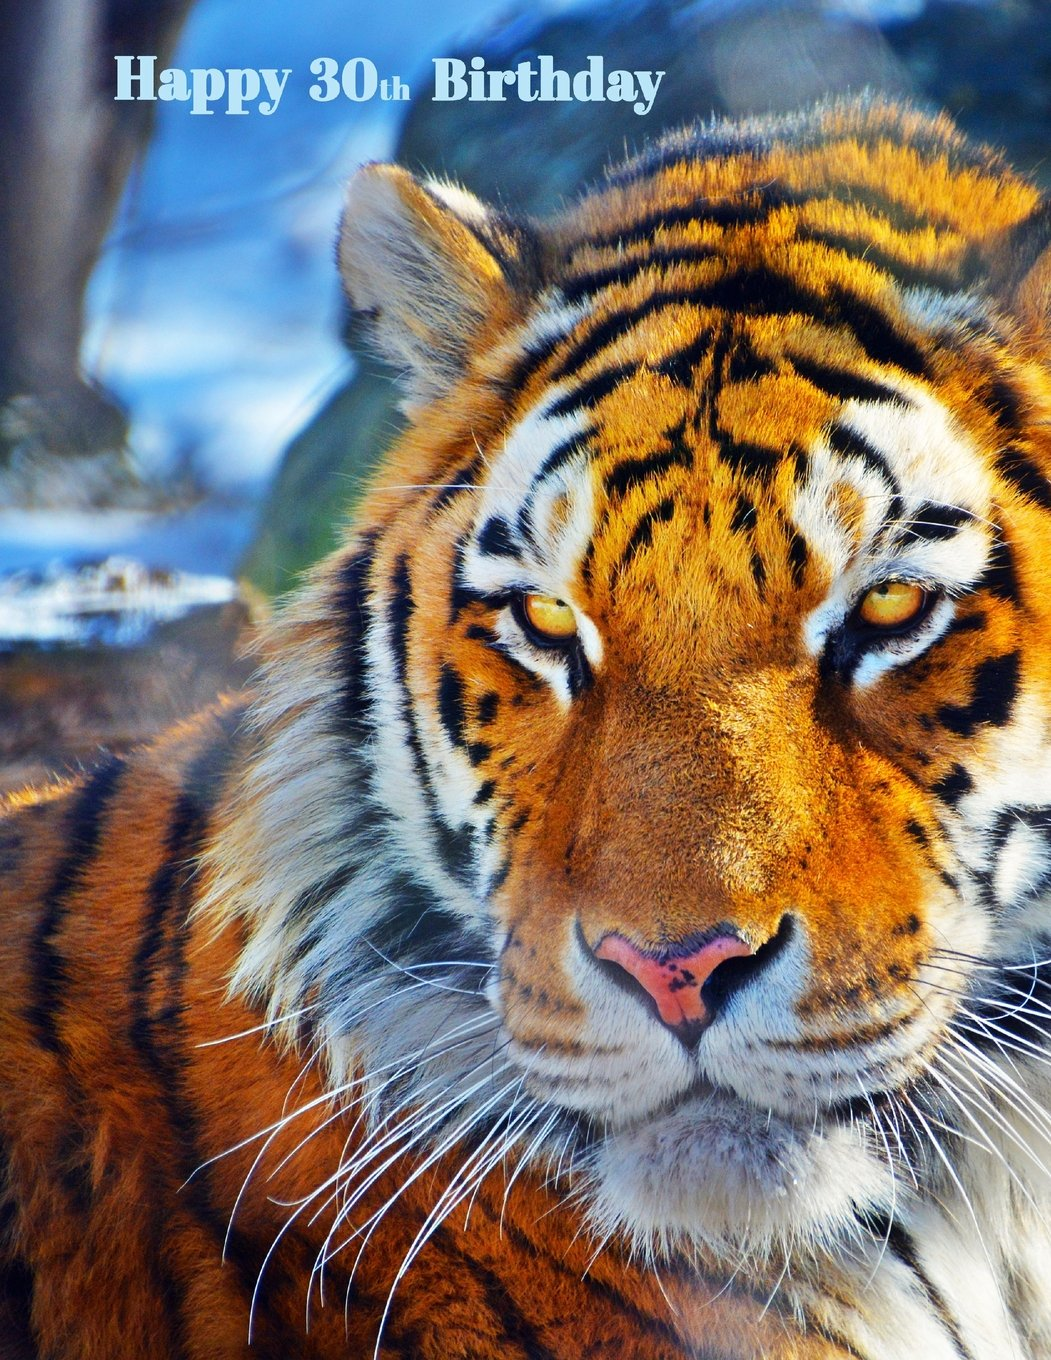 """Read Online Happy 30th Birthday: Notebook, Journal, Diary, 105 Lined Pages, Birthday Gifts for 30 Year Old Animal Lovers, Tiger Lovers, Women or Men, Best Friend, Sister, Brother, Co-Worker, 8 1/2"""" x 11"""" PDF"""